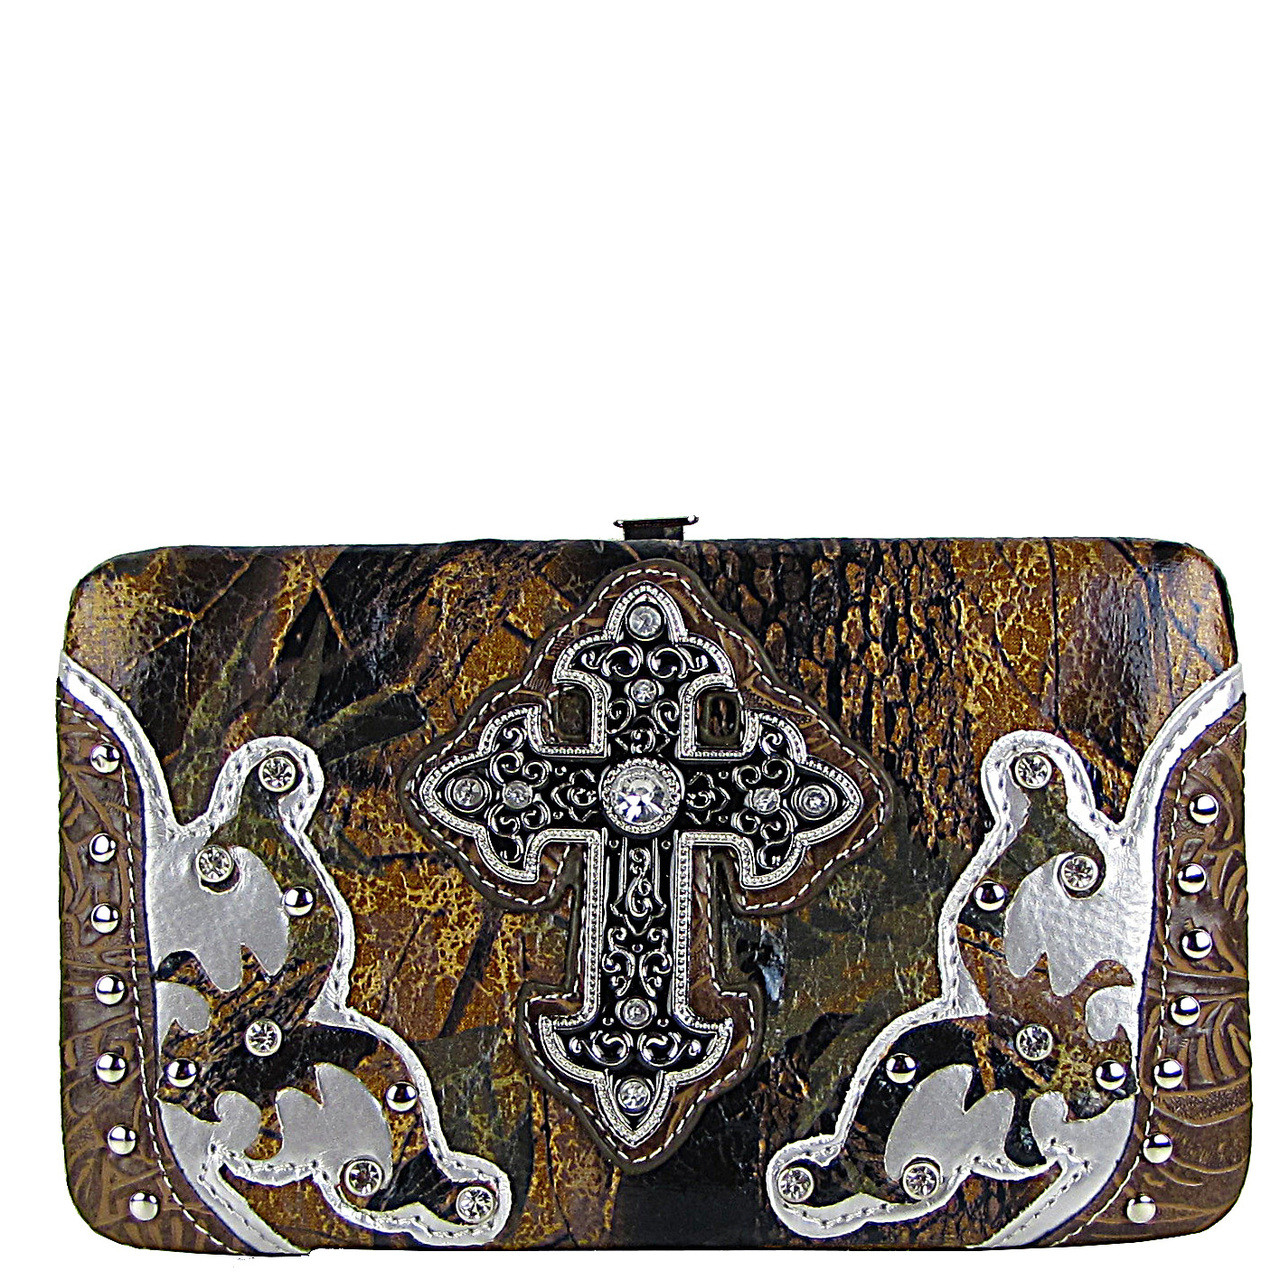 BROWN STUDDED METALLIC CAMO CROSS FLAT THICK WALLET FW2-04107BRN